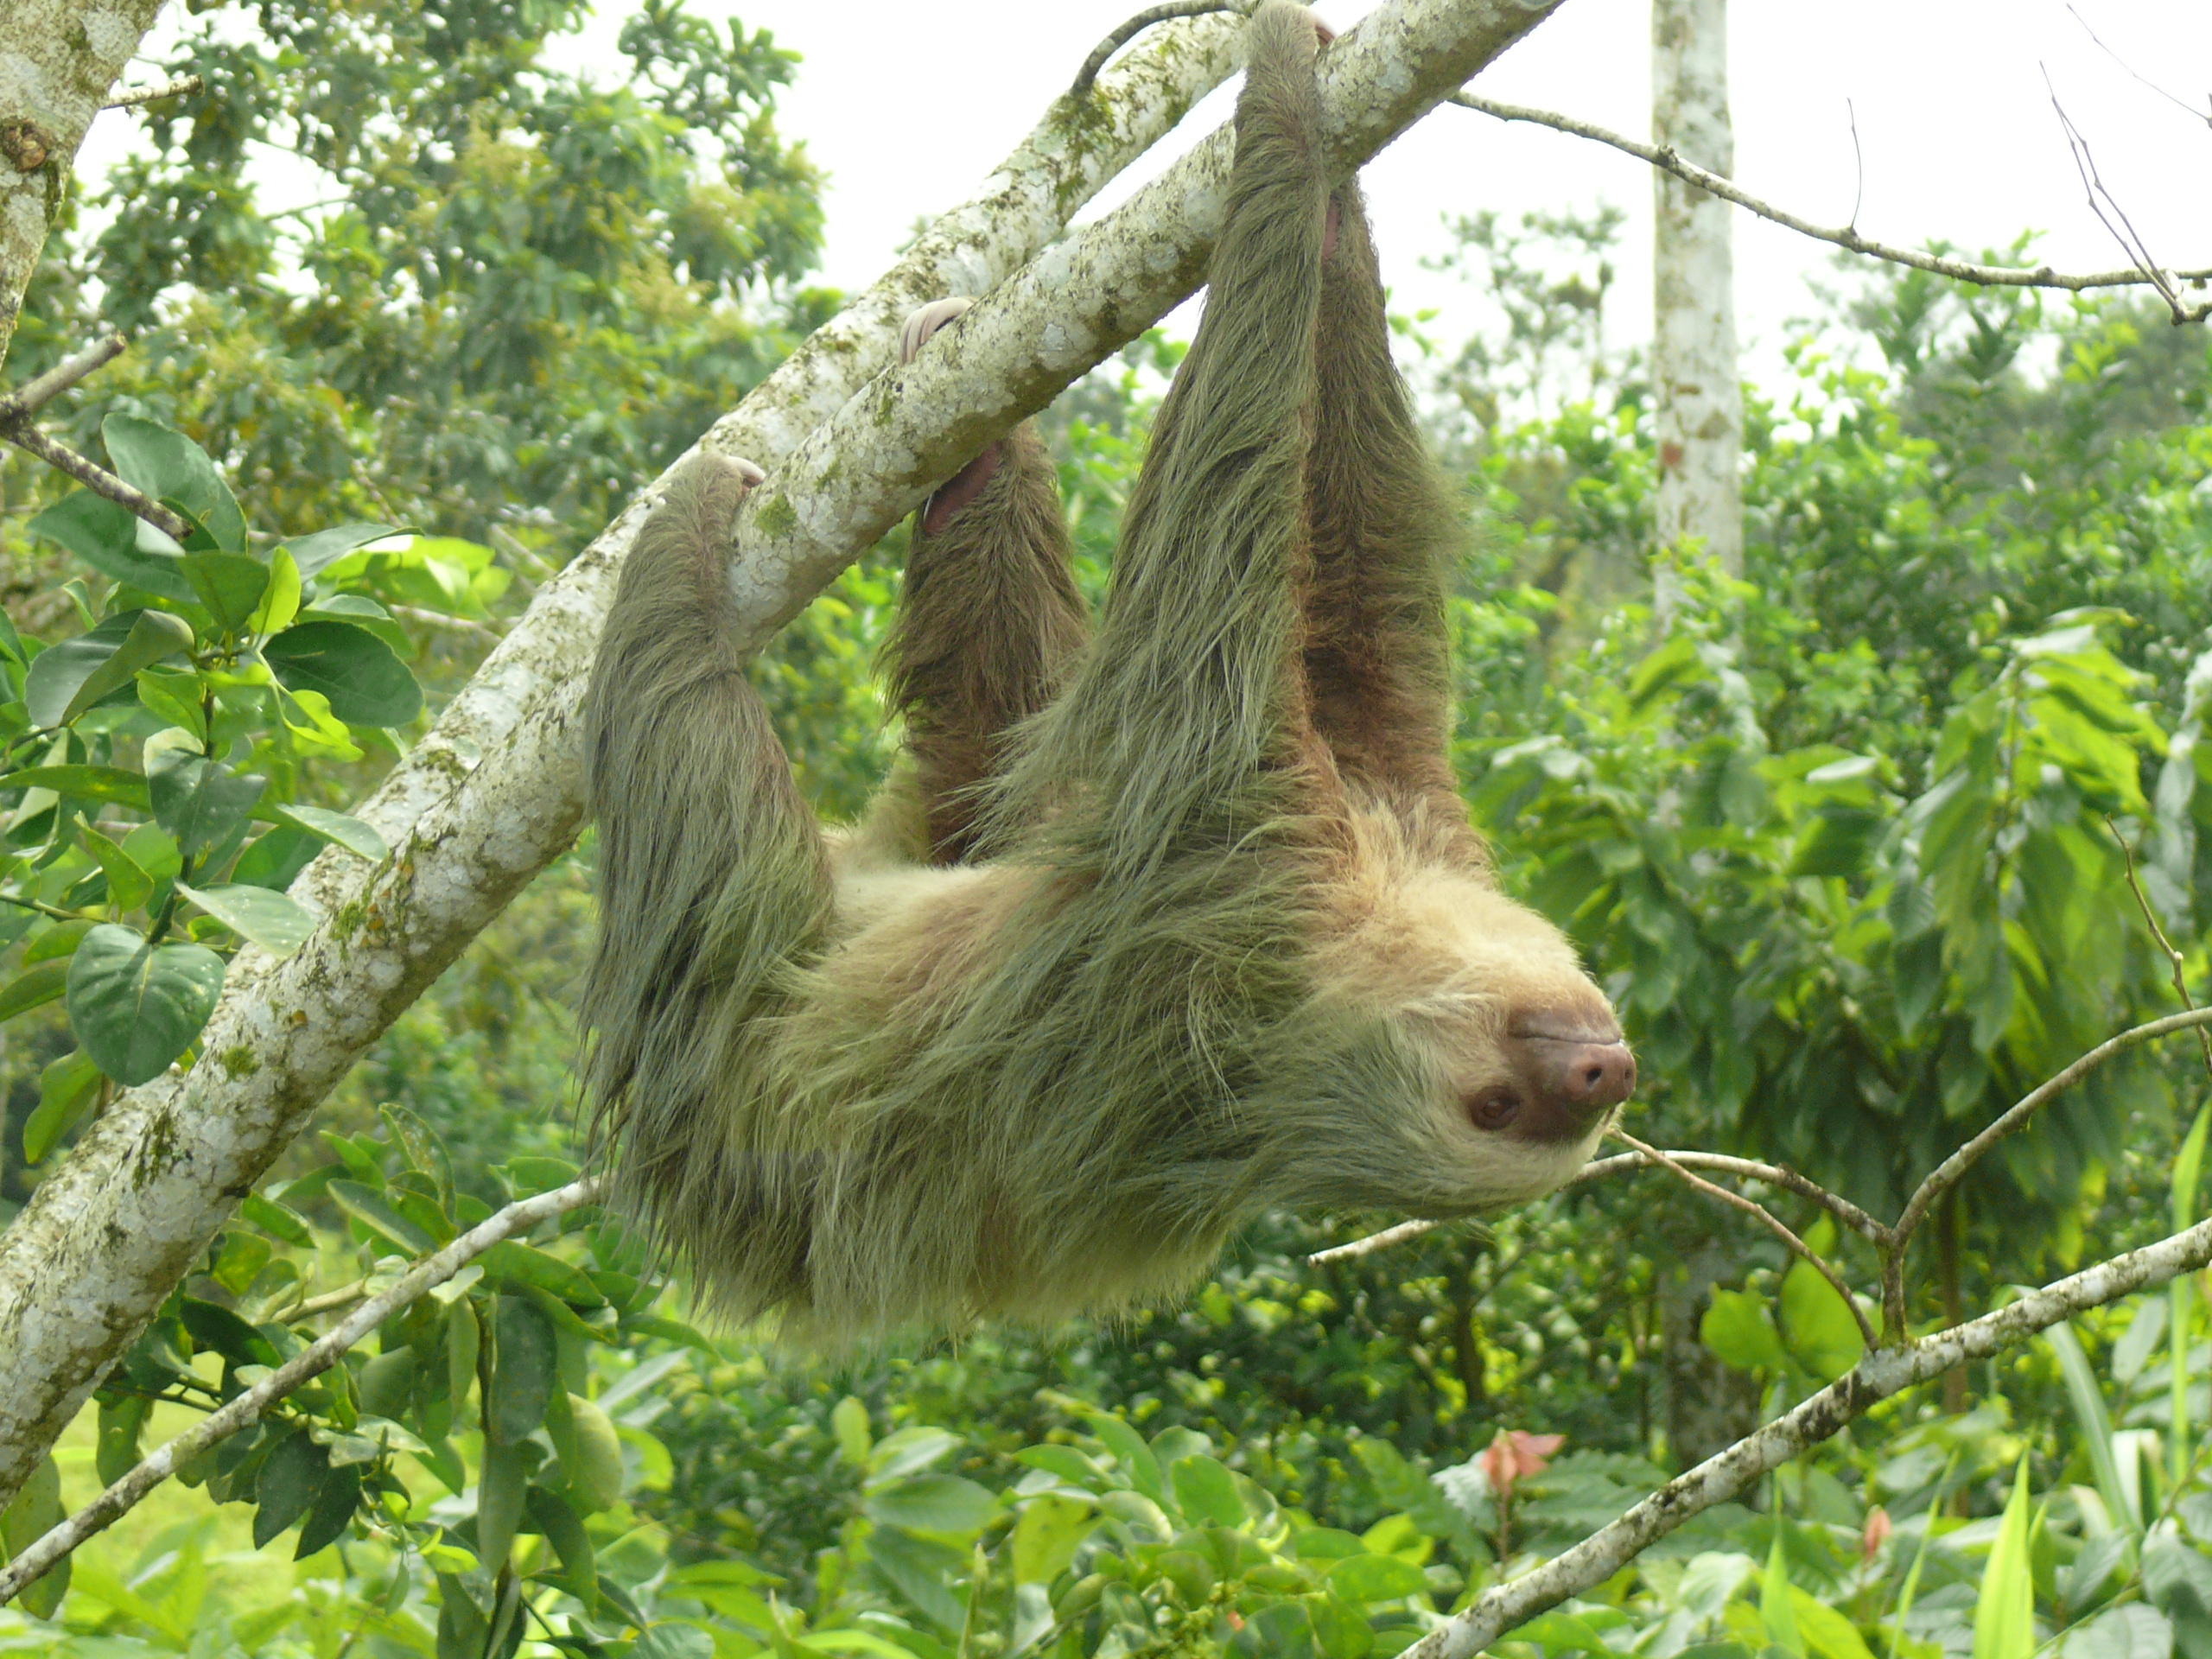 A curious sloth in Costa Rica